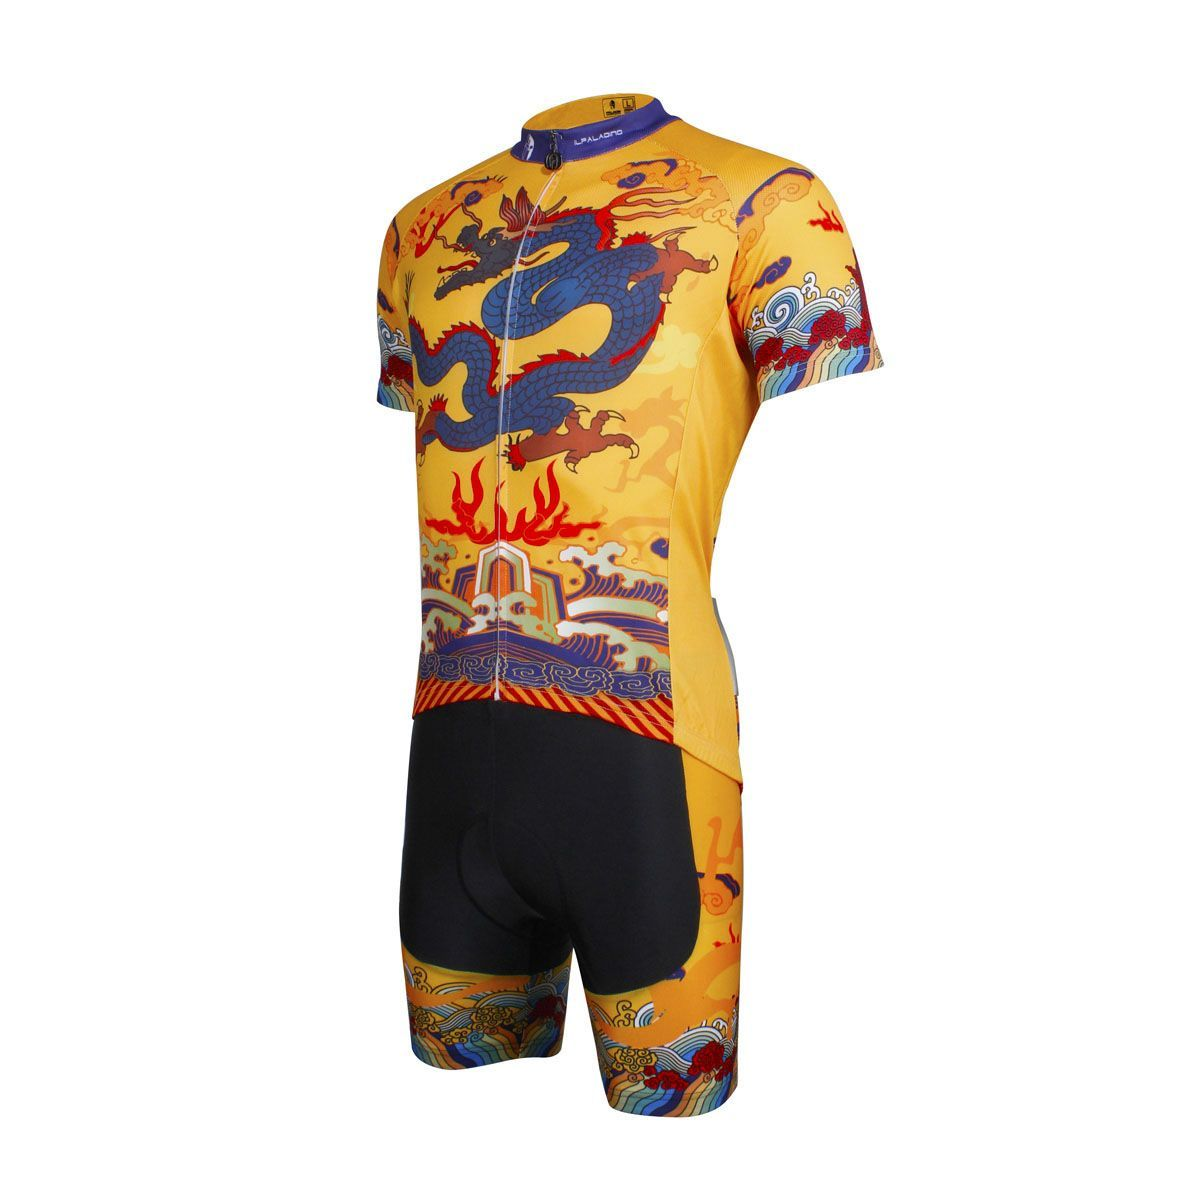 Cycling Clothing Guidediscount Clothingwomens Bicycle Apparel Mens Clothingmens